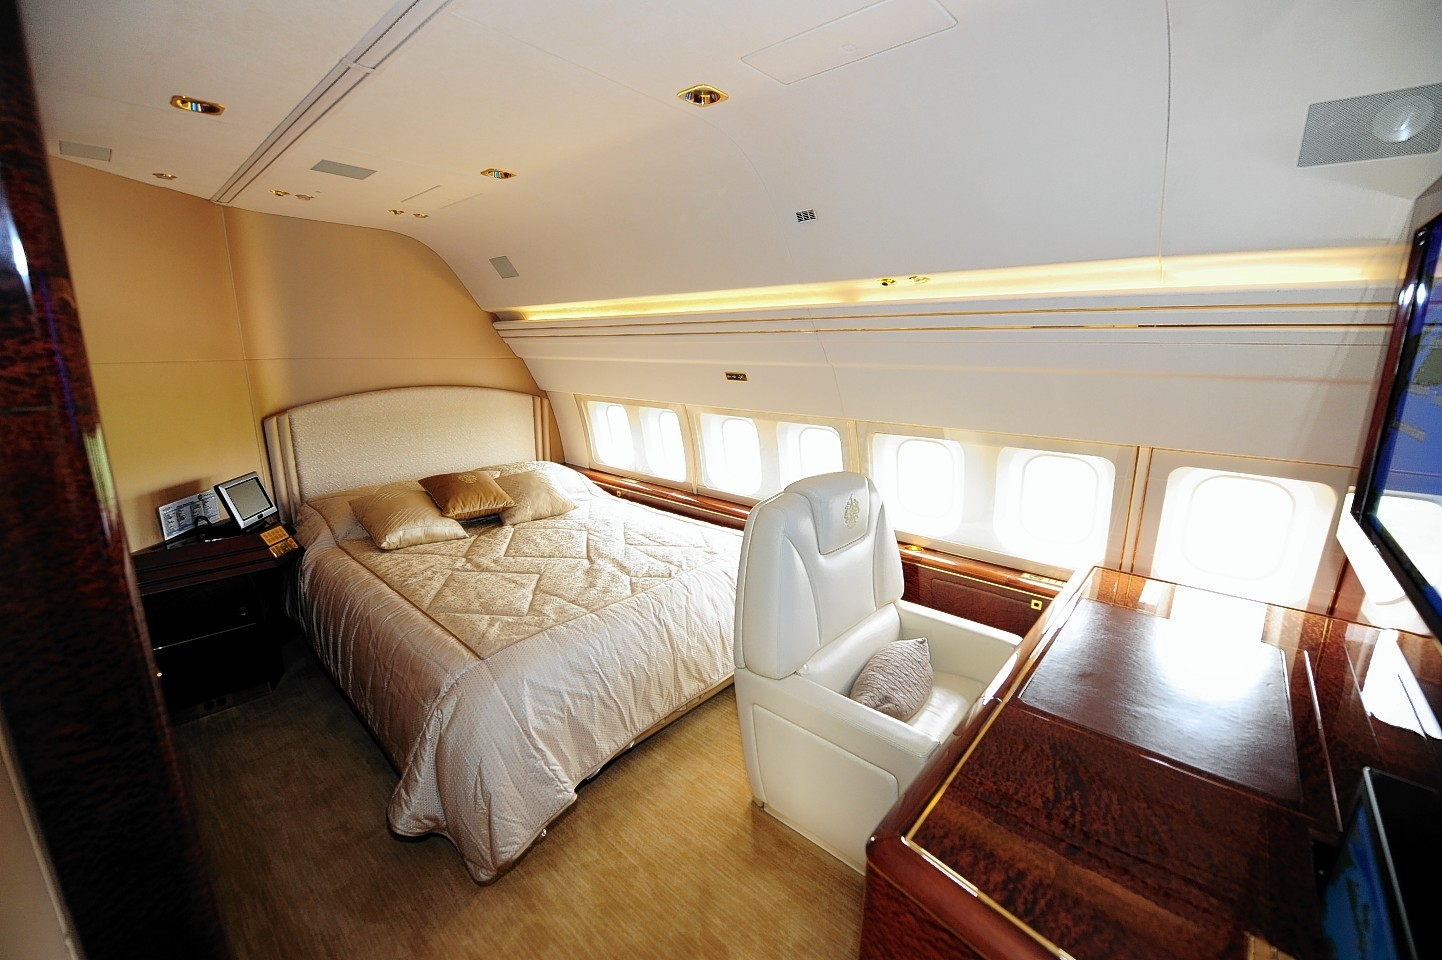 A double bed on Donald Trump's luxury jet